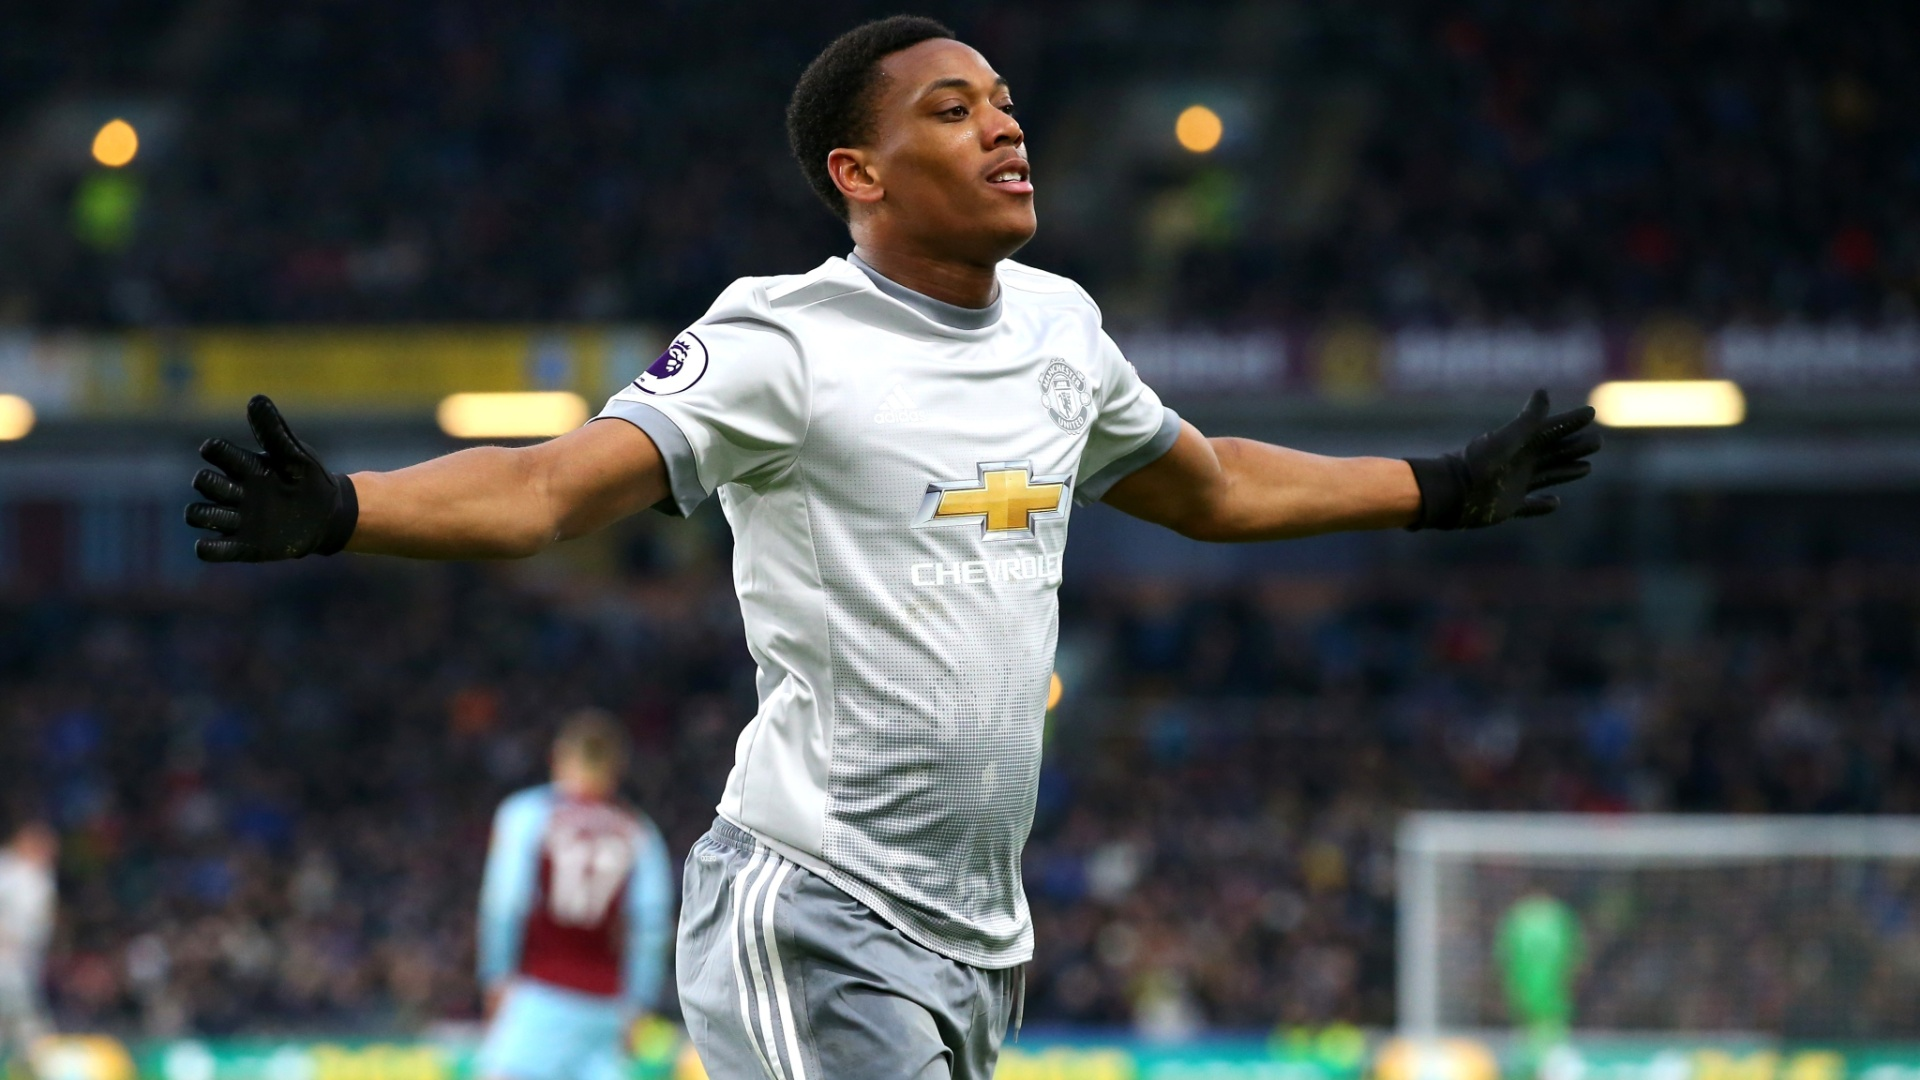 Martial comemora o gol da vitótia do United sobre o Burnley